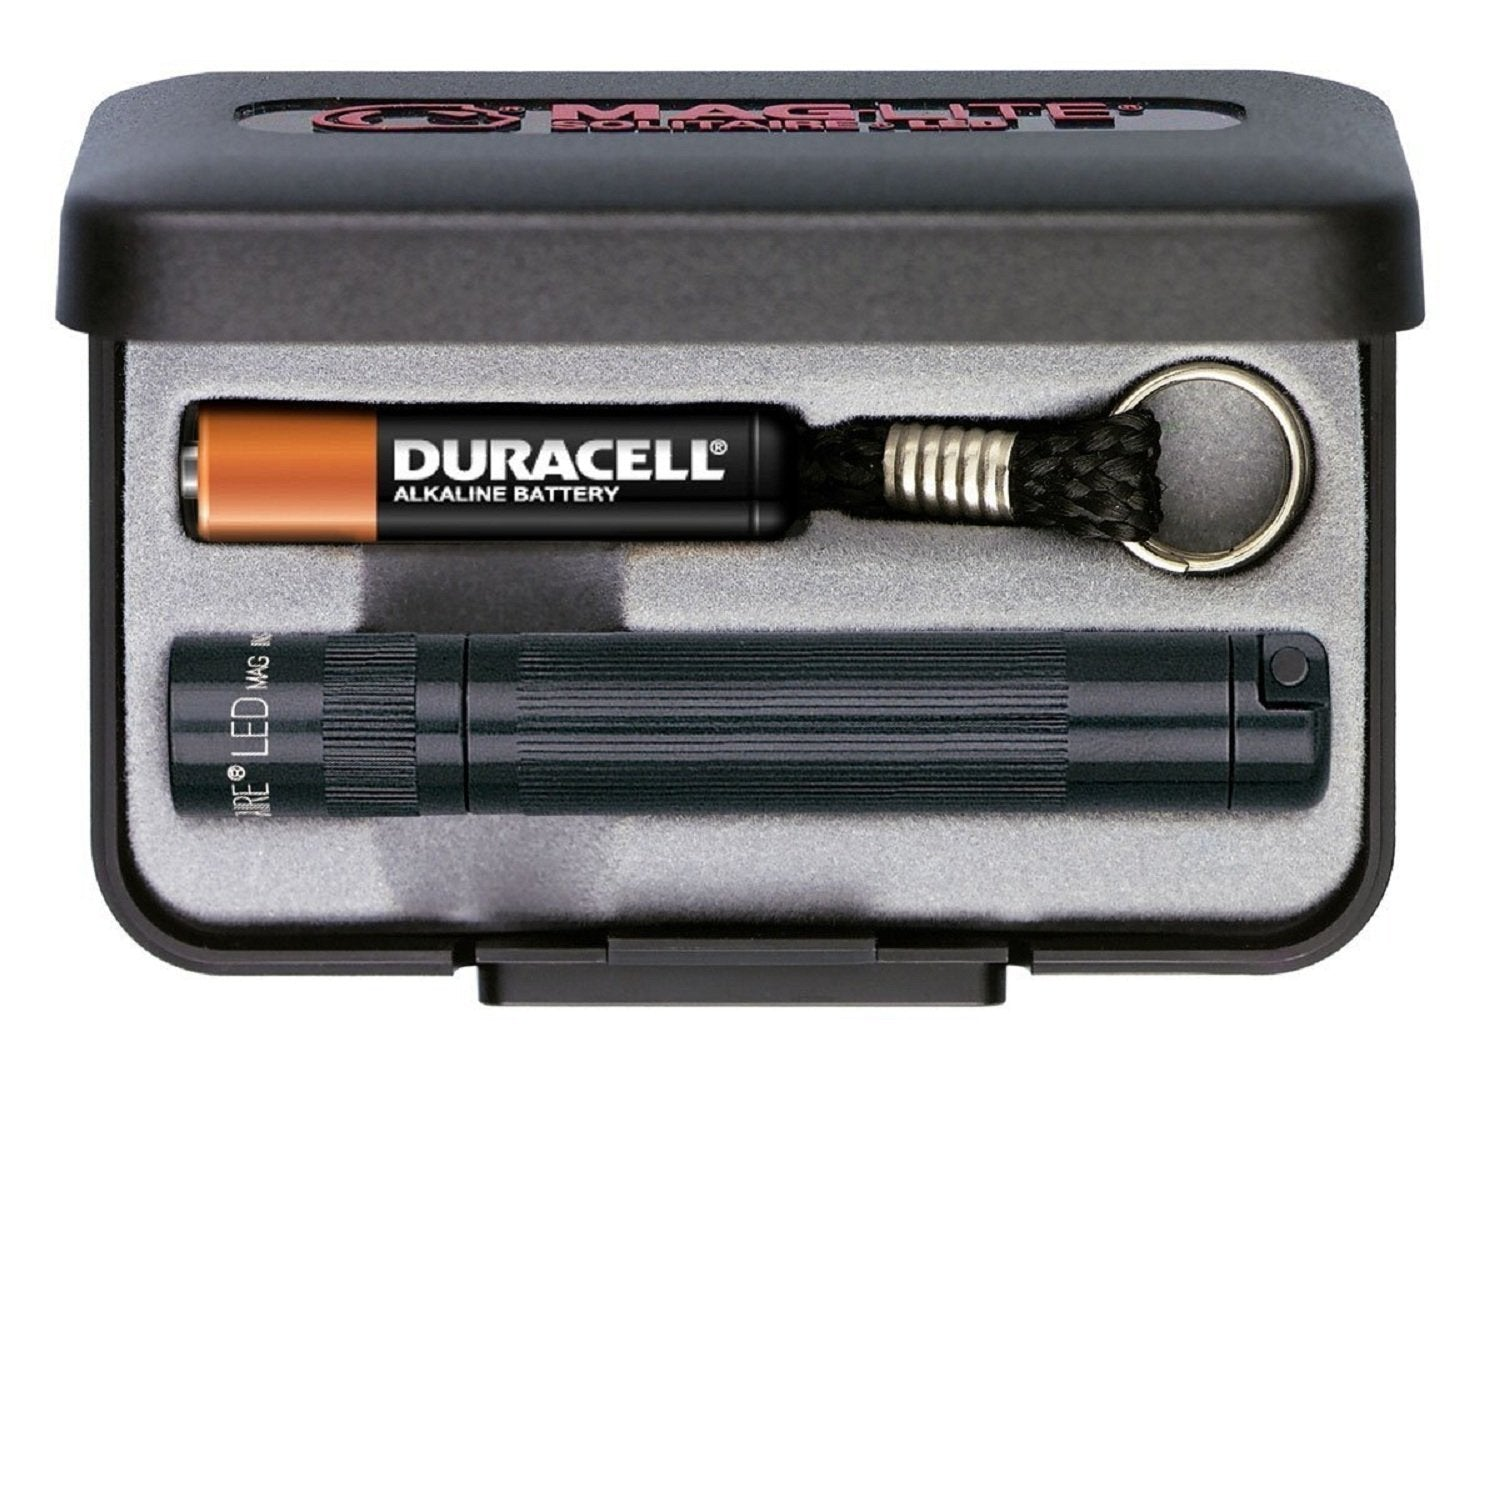 MagLite Solitaire LED AAA Flashlight Presentation Box, Black Tactical Gear Australia Supplier Distributor Dealer